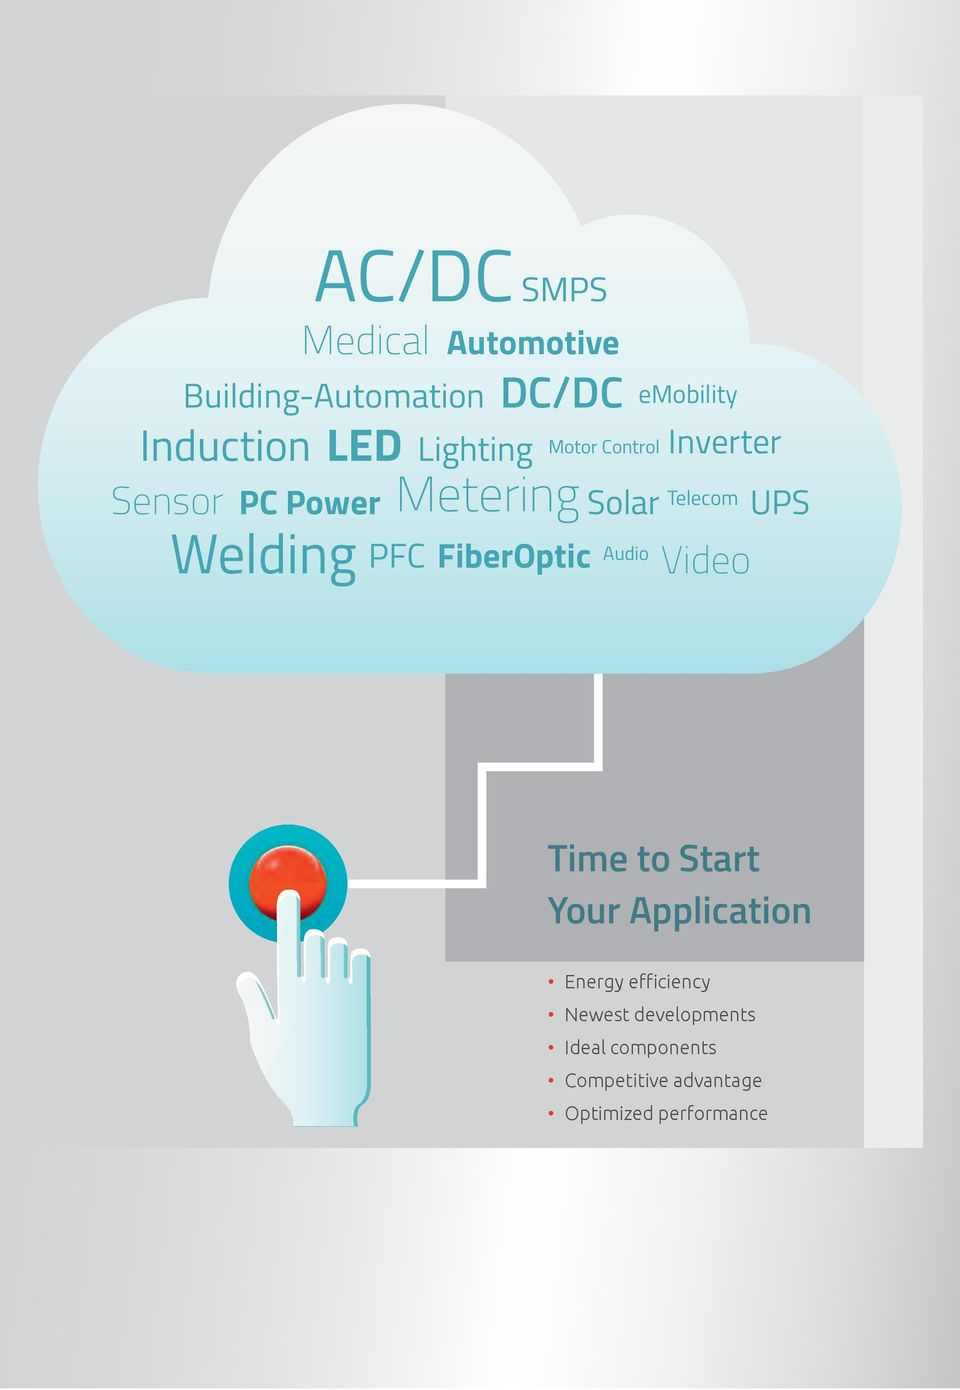 52w Smps Acdc Adapter Simple Circuit Diagram Intelligent Solutions Driving Innovation High Power Application Pdf Welding Pfc Fiberoptic Audio Video Time To Start Your Energy E